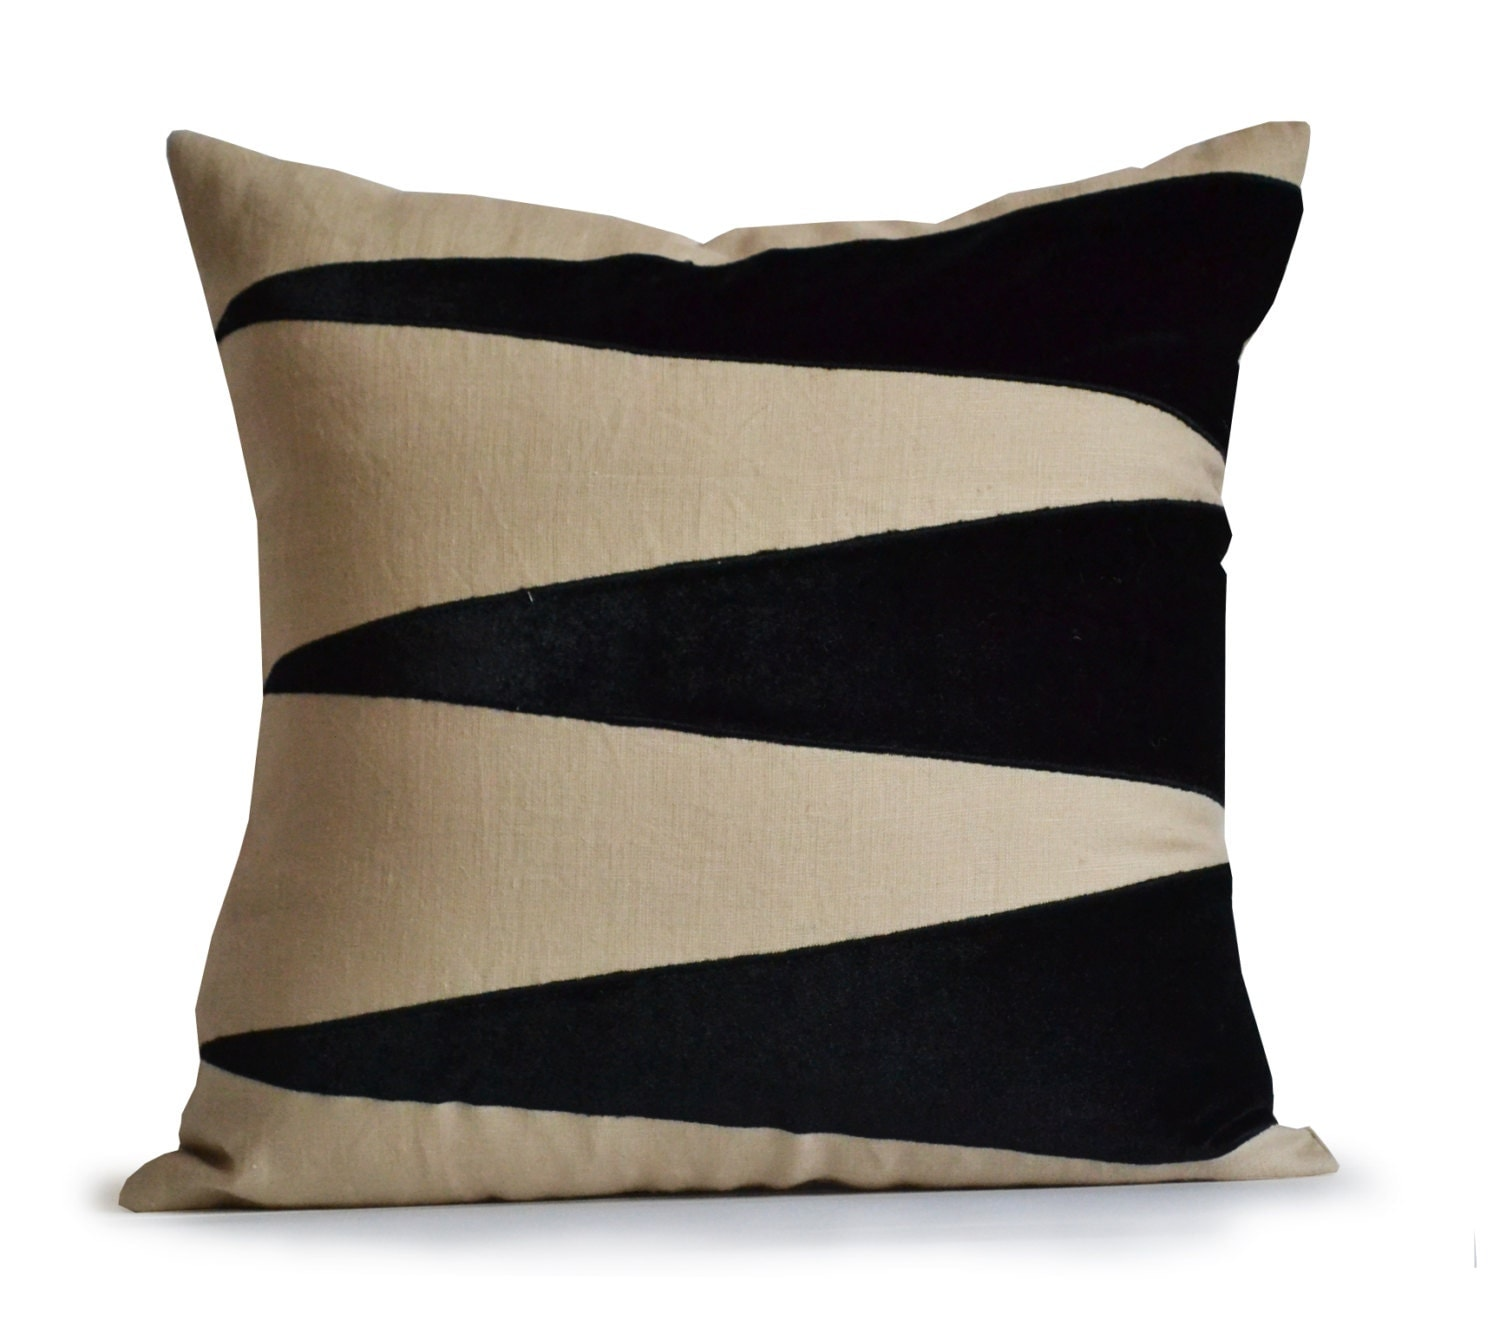 Decorative Linen Pillows : Decorative Throw Linen Pillow Cover Applique Velvet Pillow